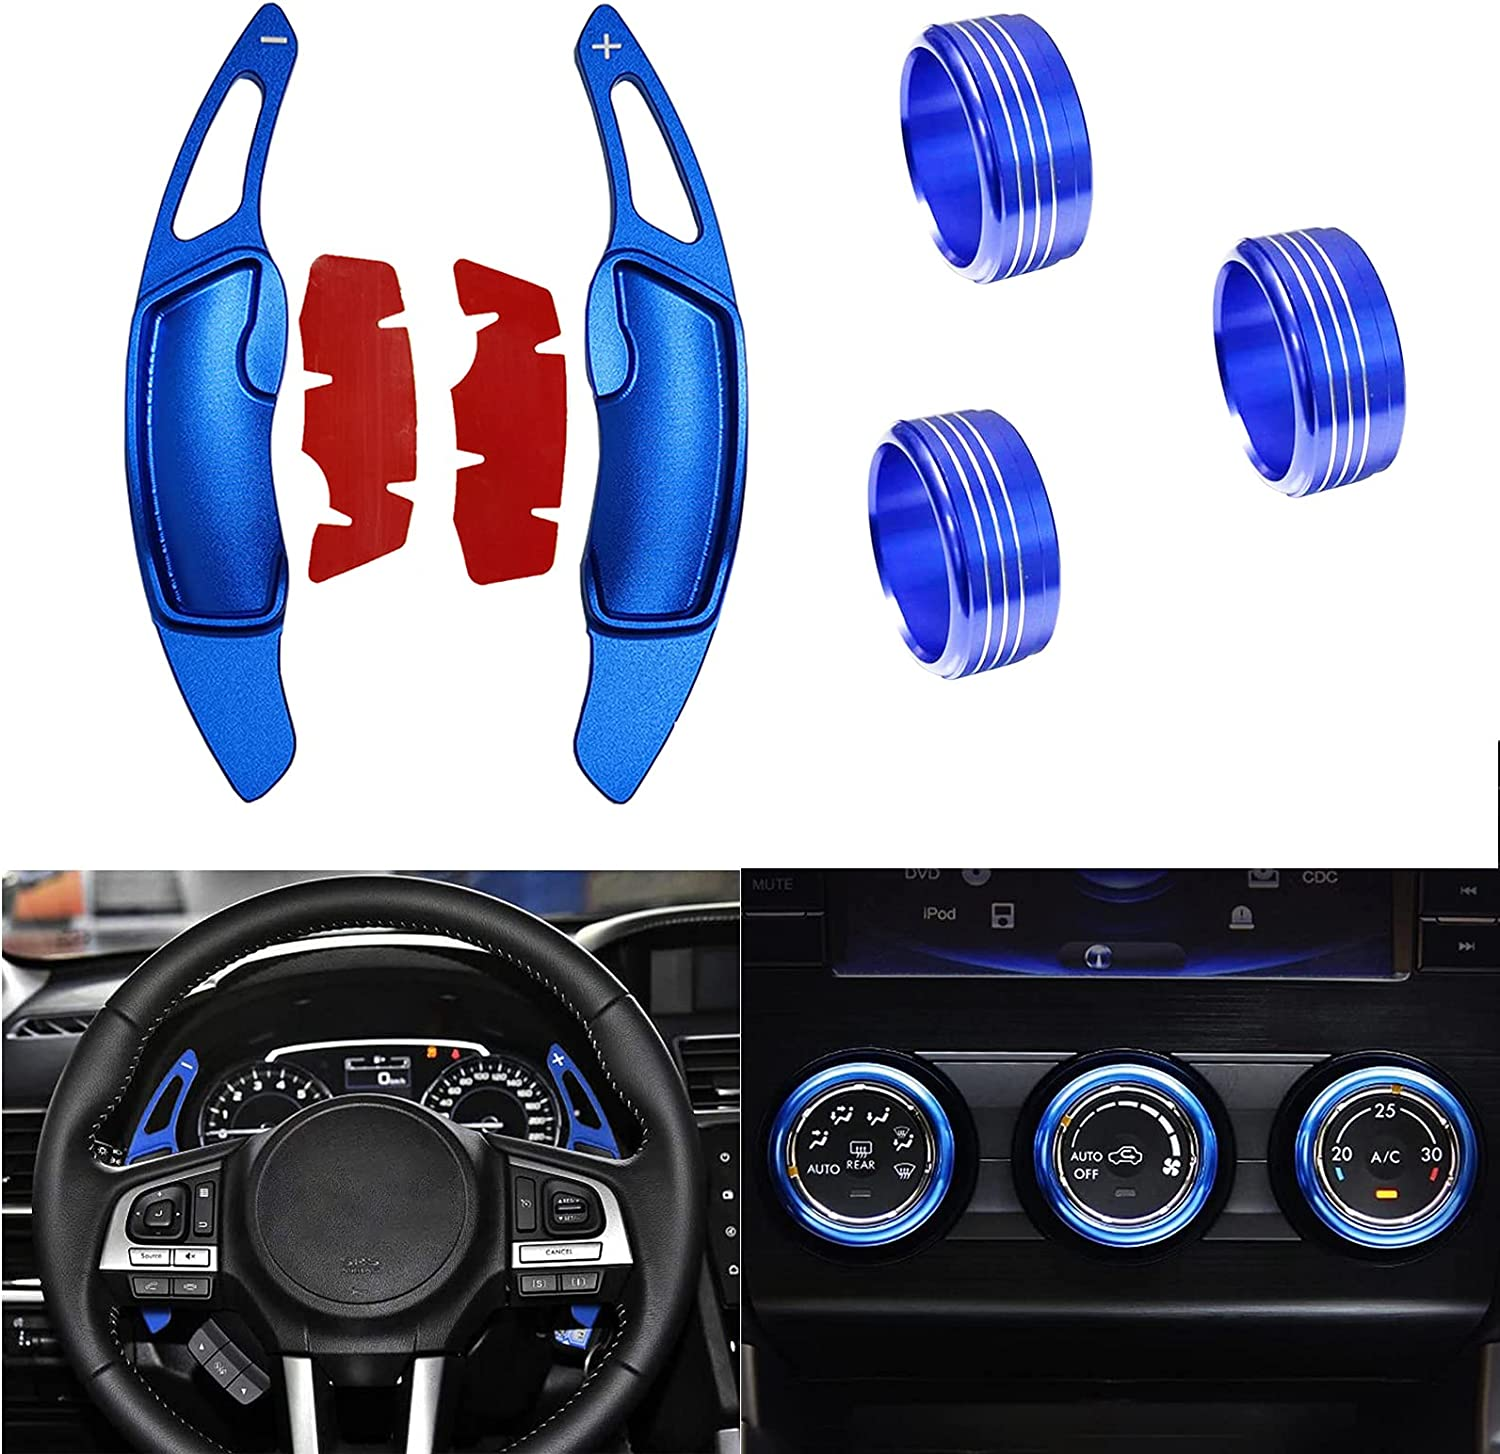 KEALAS 5pcs Aluminum Alloy Steering Wheel Shift Paddle+Air Conditioning A/C Button Knob Decor Cover Fit for Subaru Forester 2014-2018, XV 2014-2017,WRX 2015-2020 (Blue)